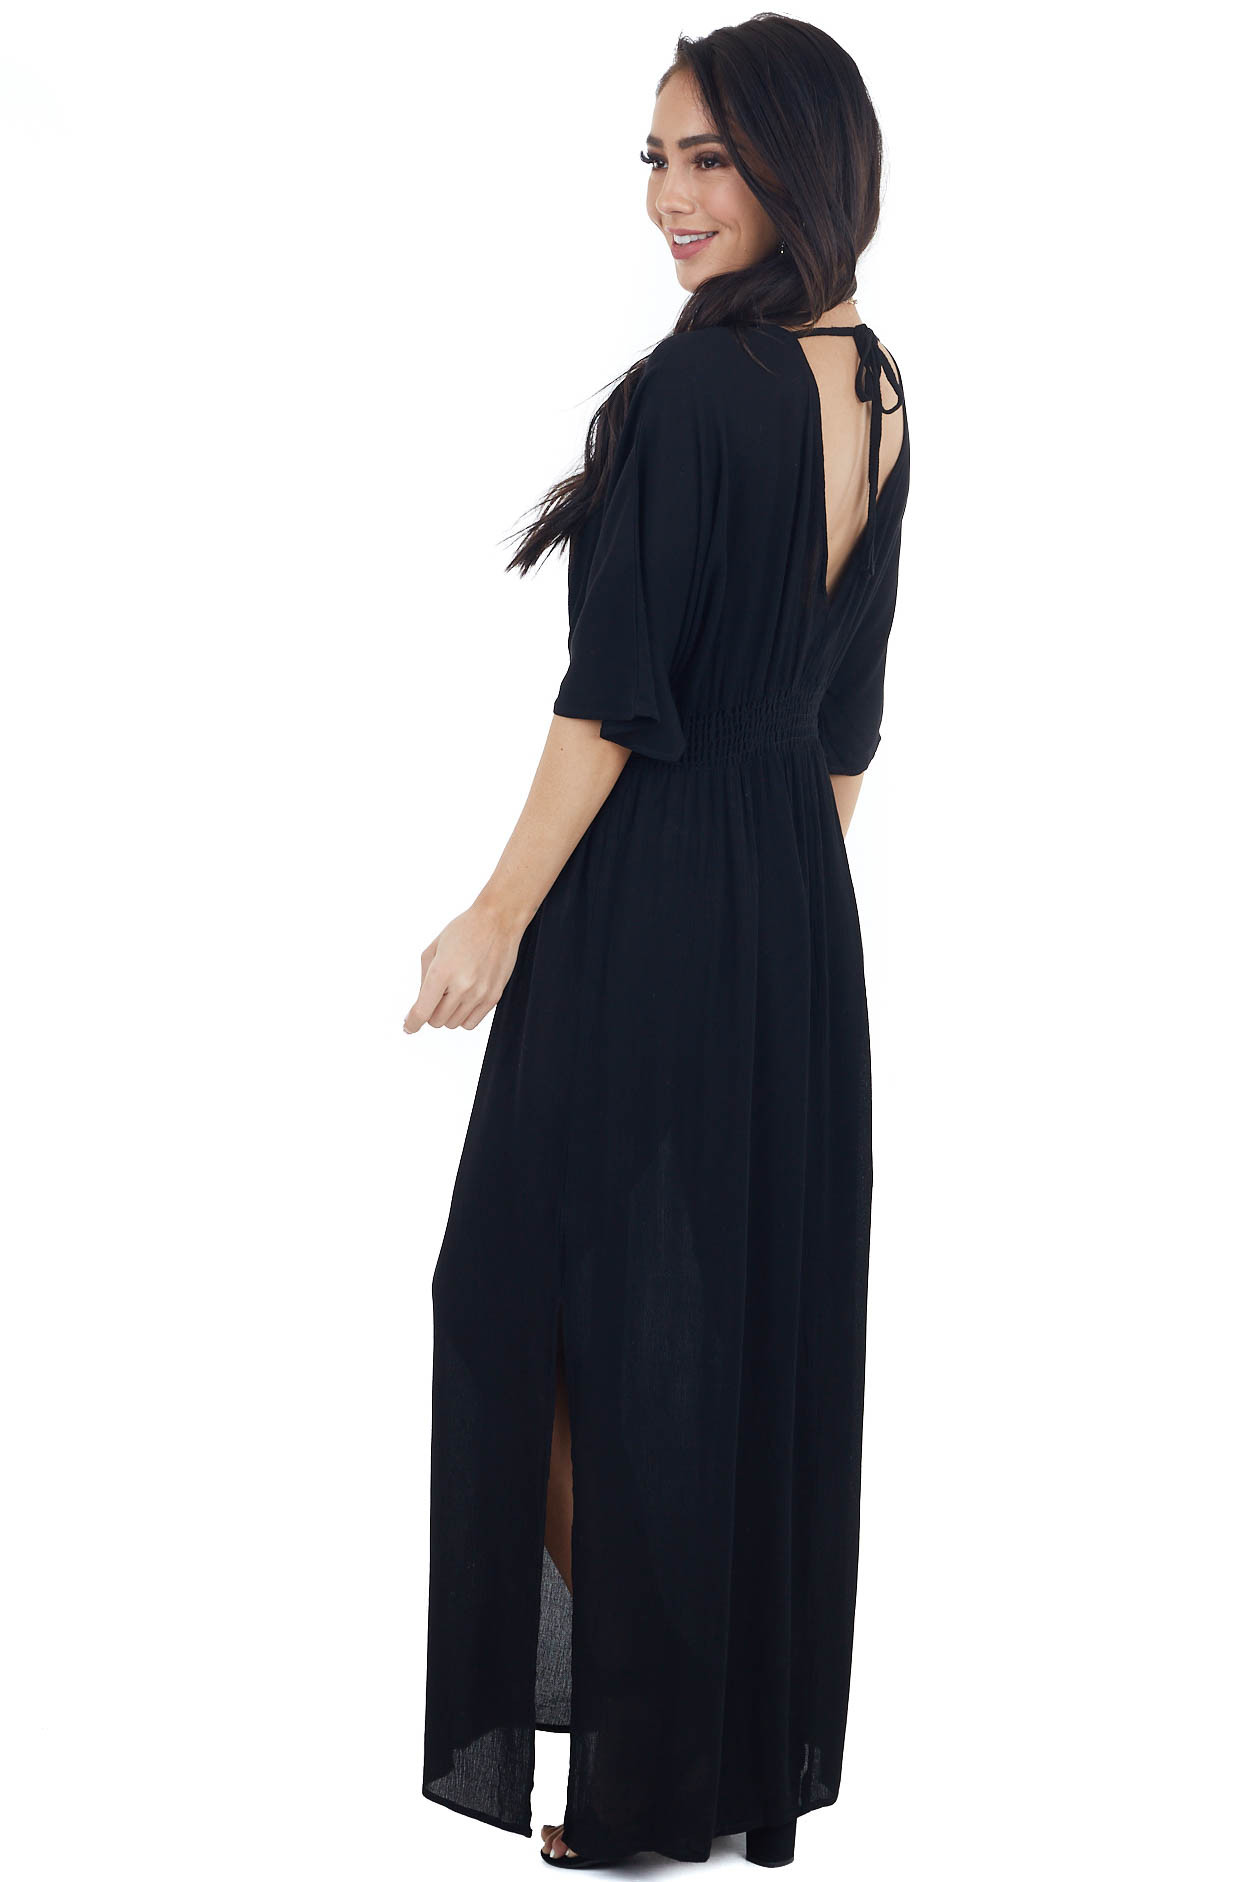 Black Short Sleeve Surplice Maxi Dress with Side Slits